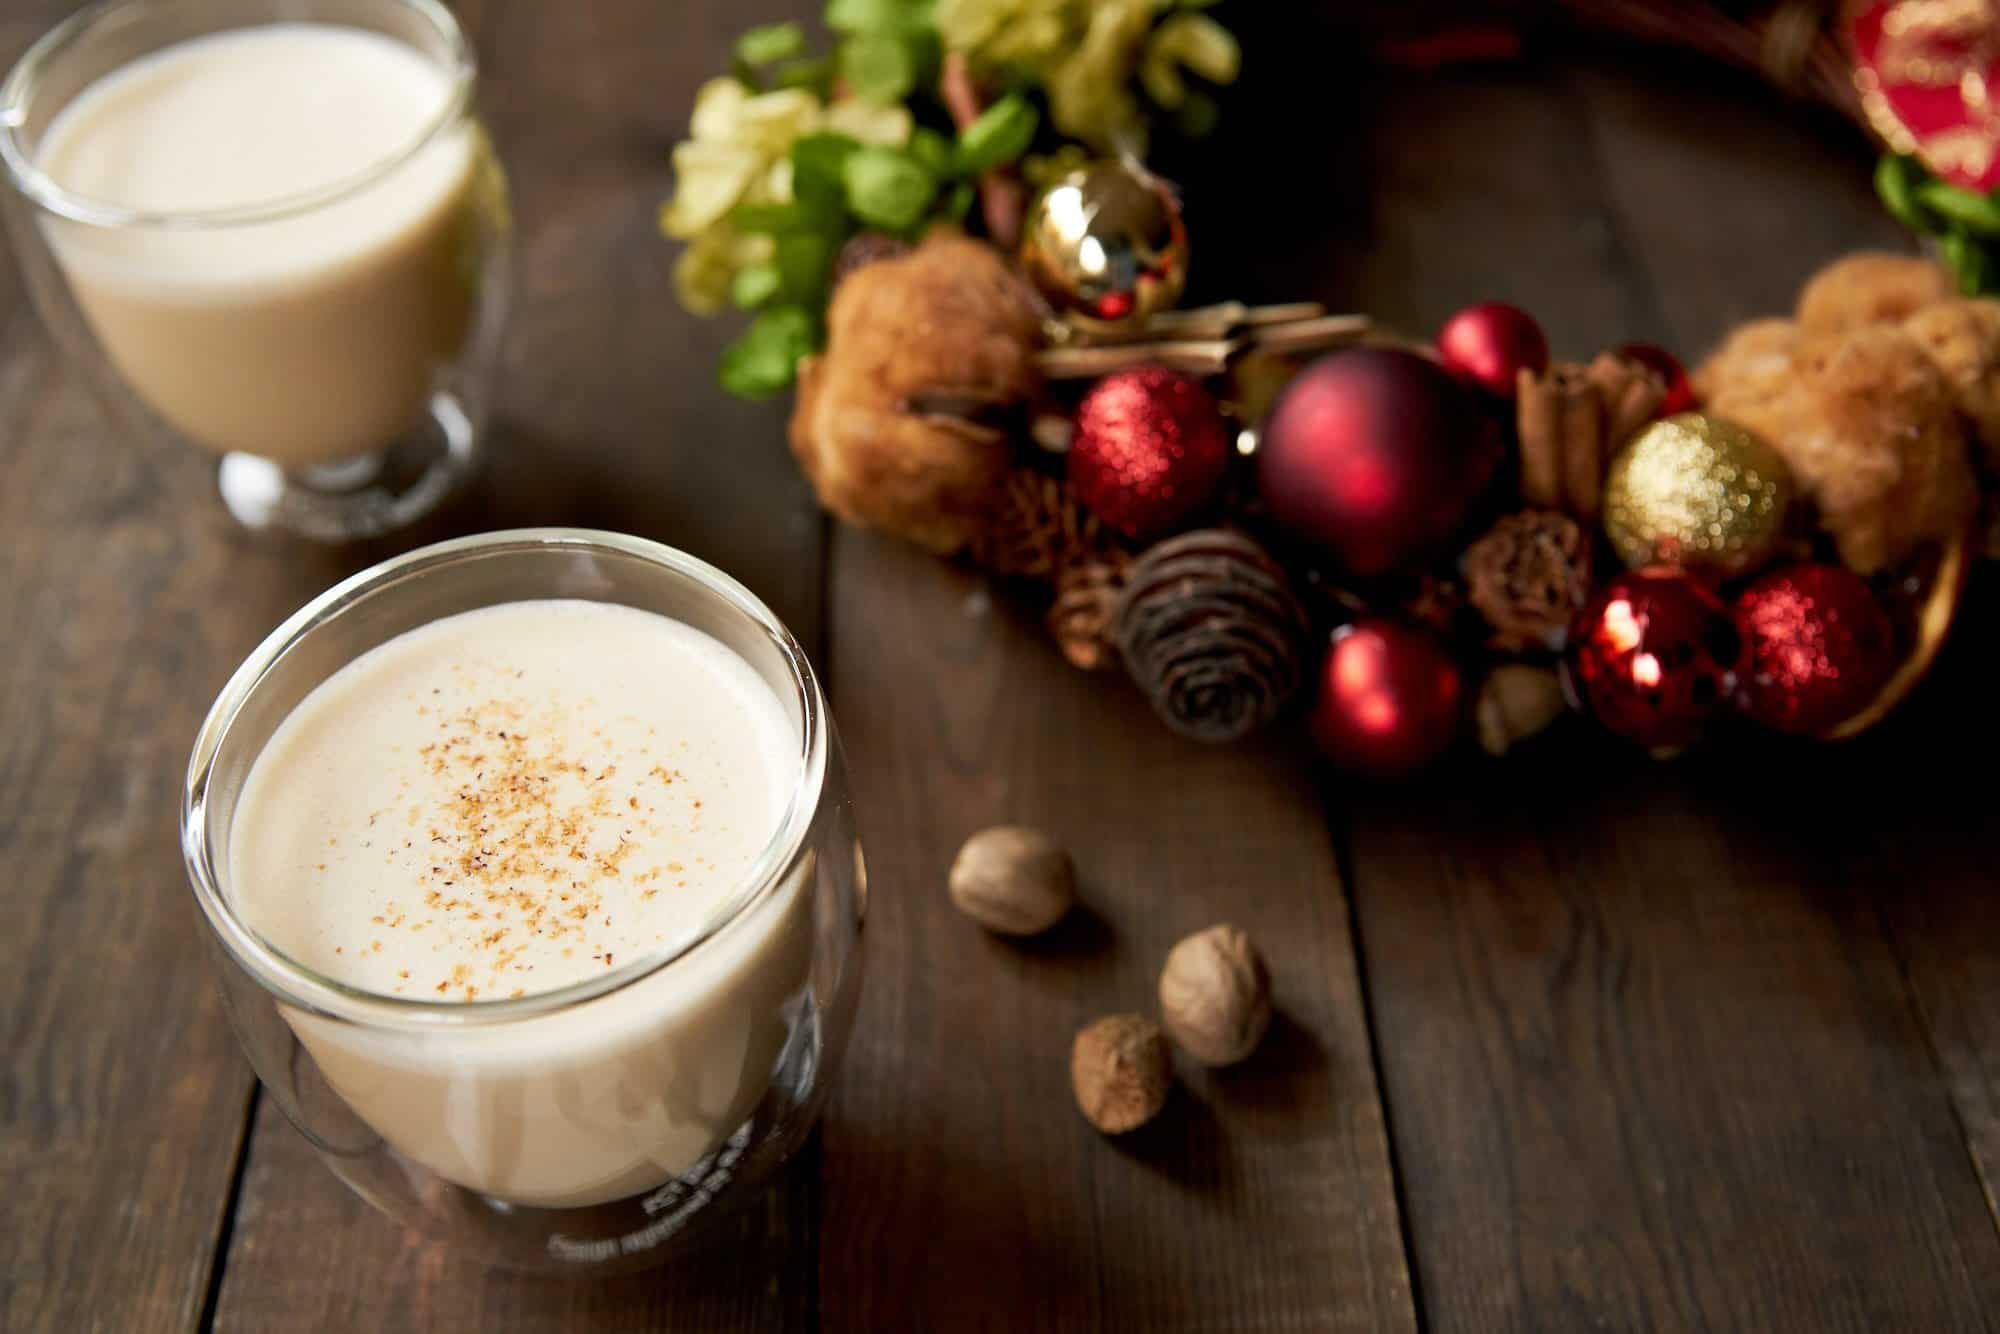 An easy hot eggnog that will warm you up from the inside out.